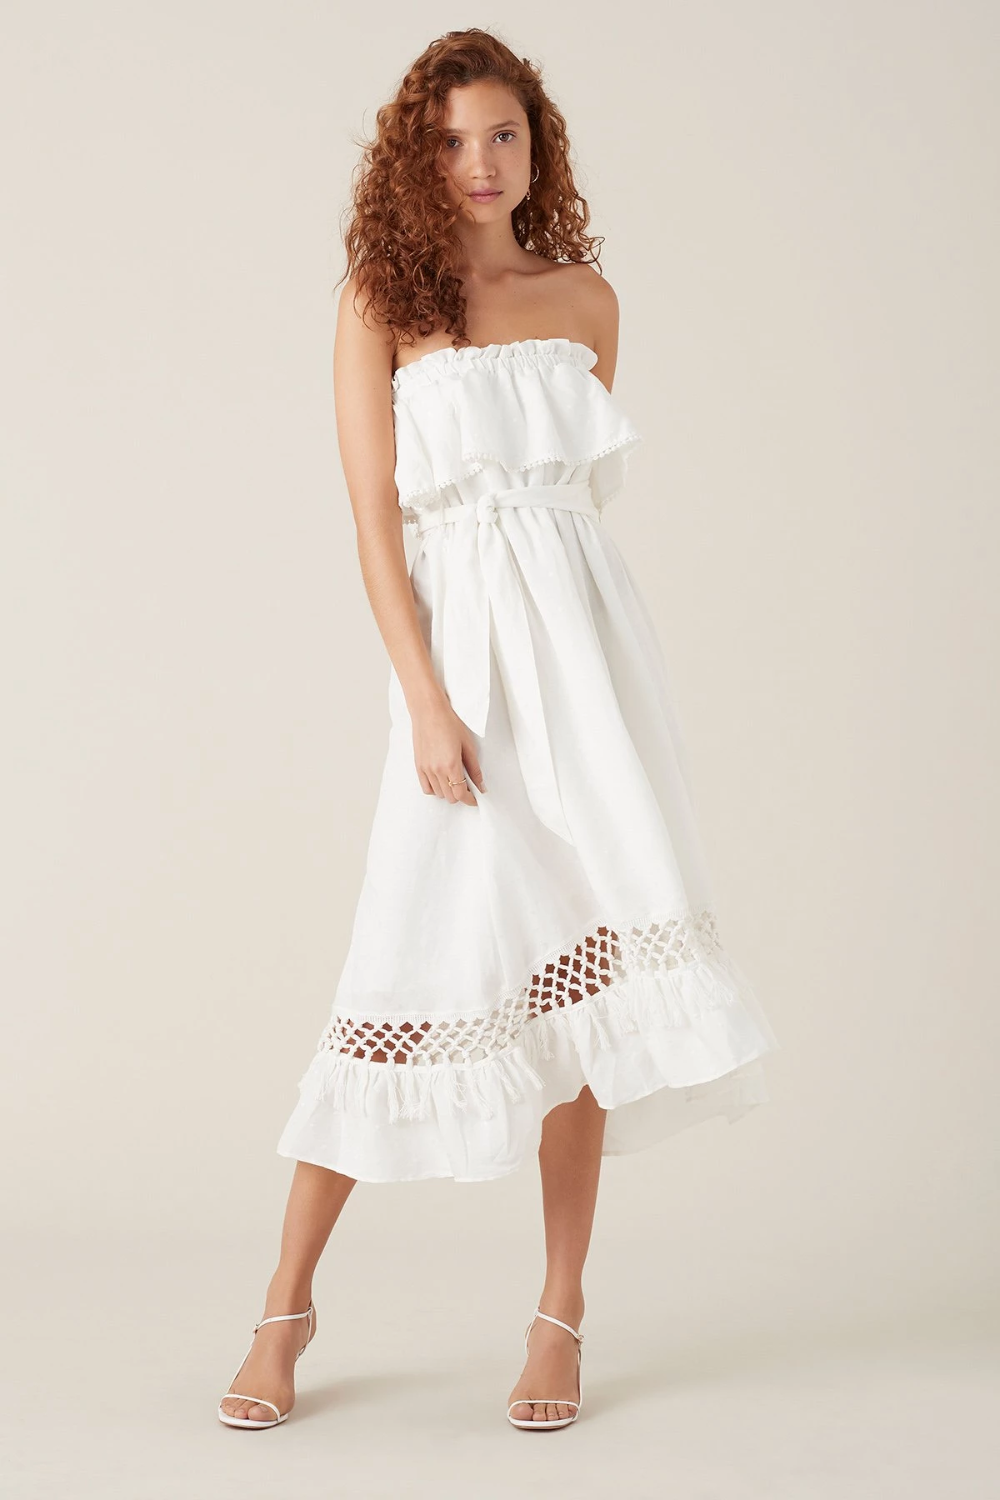 Tigerlily Tanoosa Maxi Strapless Dress Dresses White Strapless Dress Maxi Dress